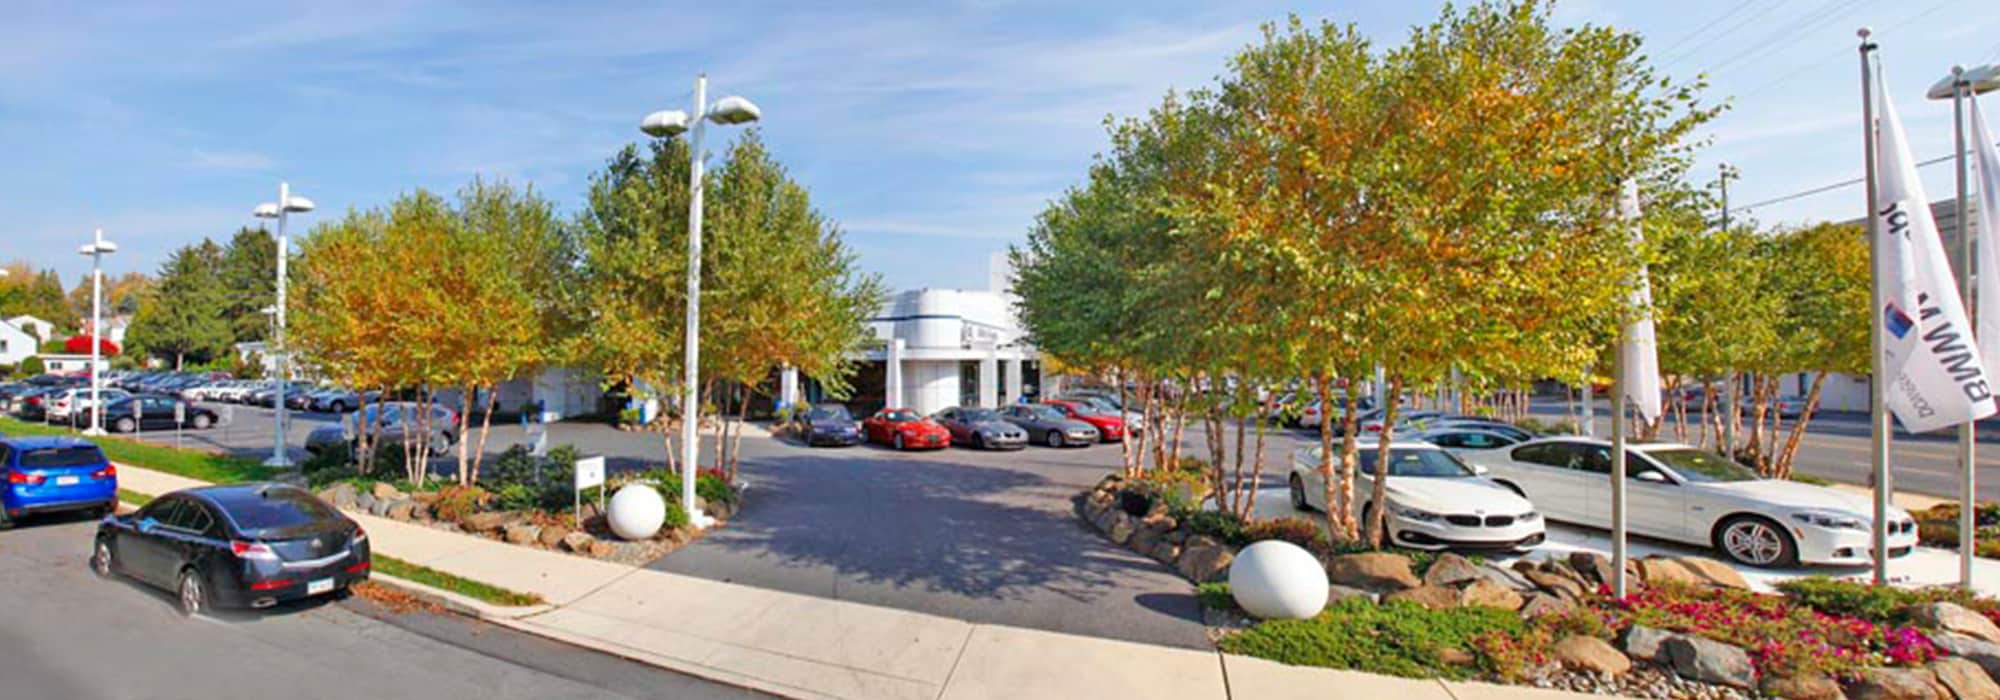 Bmw Dealership Near Me >> Bmw Dealership Near Me Bmw Of Reading Local Bmw Dealership